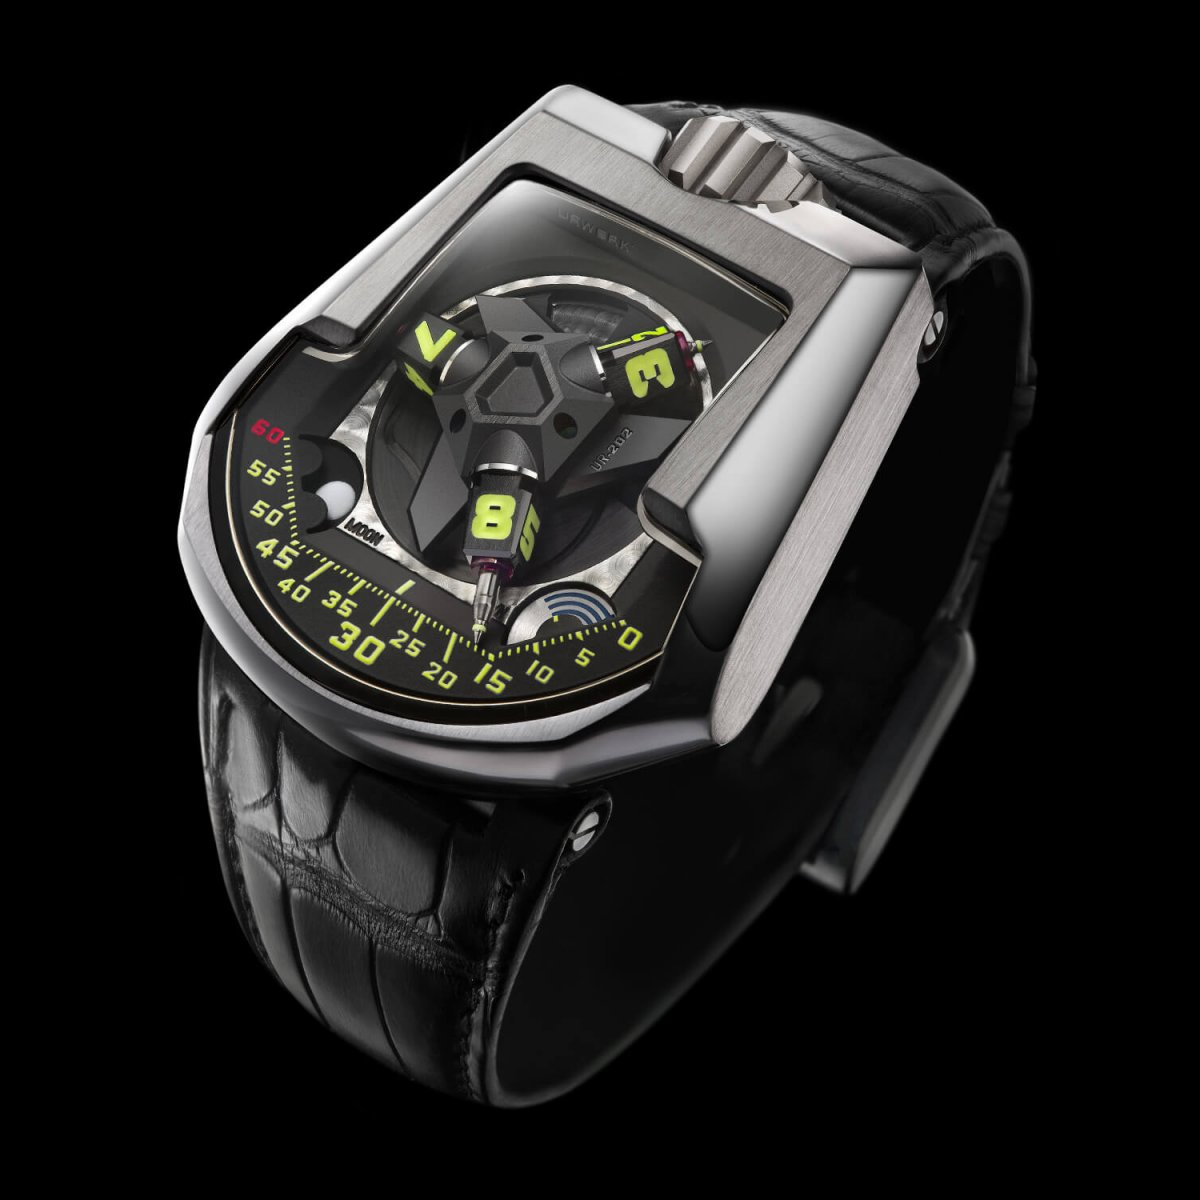 Swiss timepieces satellite watch UR-202